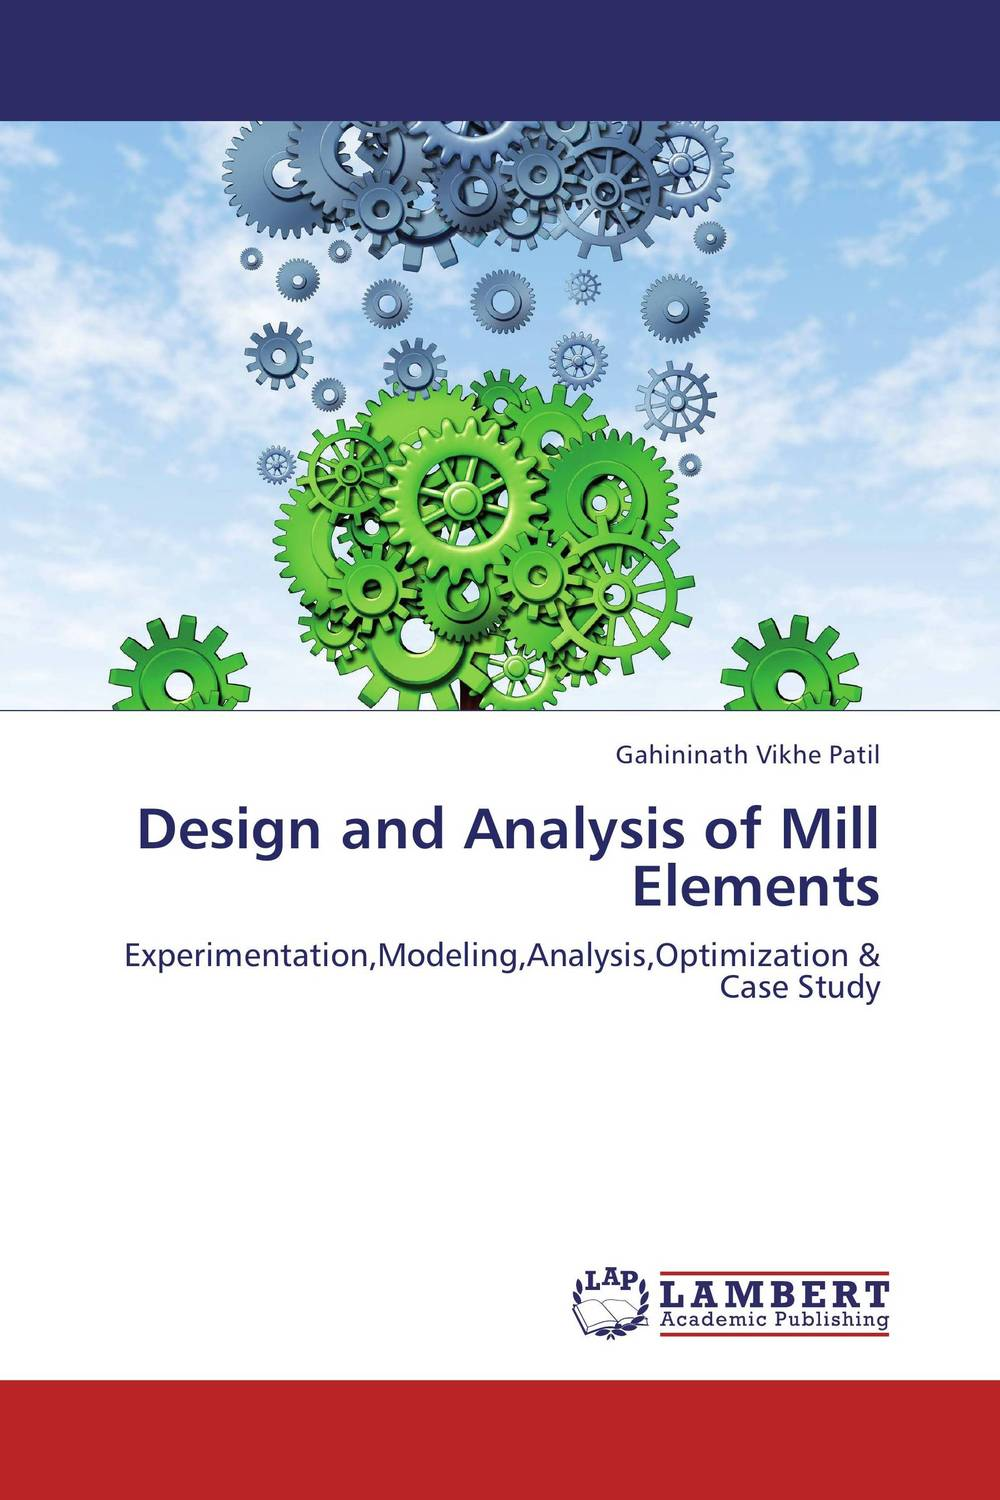 Design and Analysis of Mill Elements